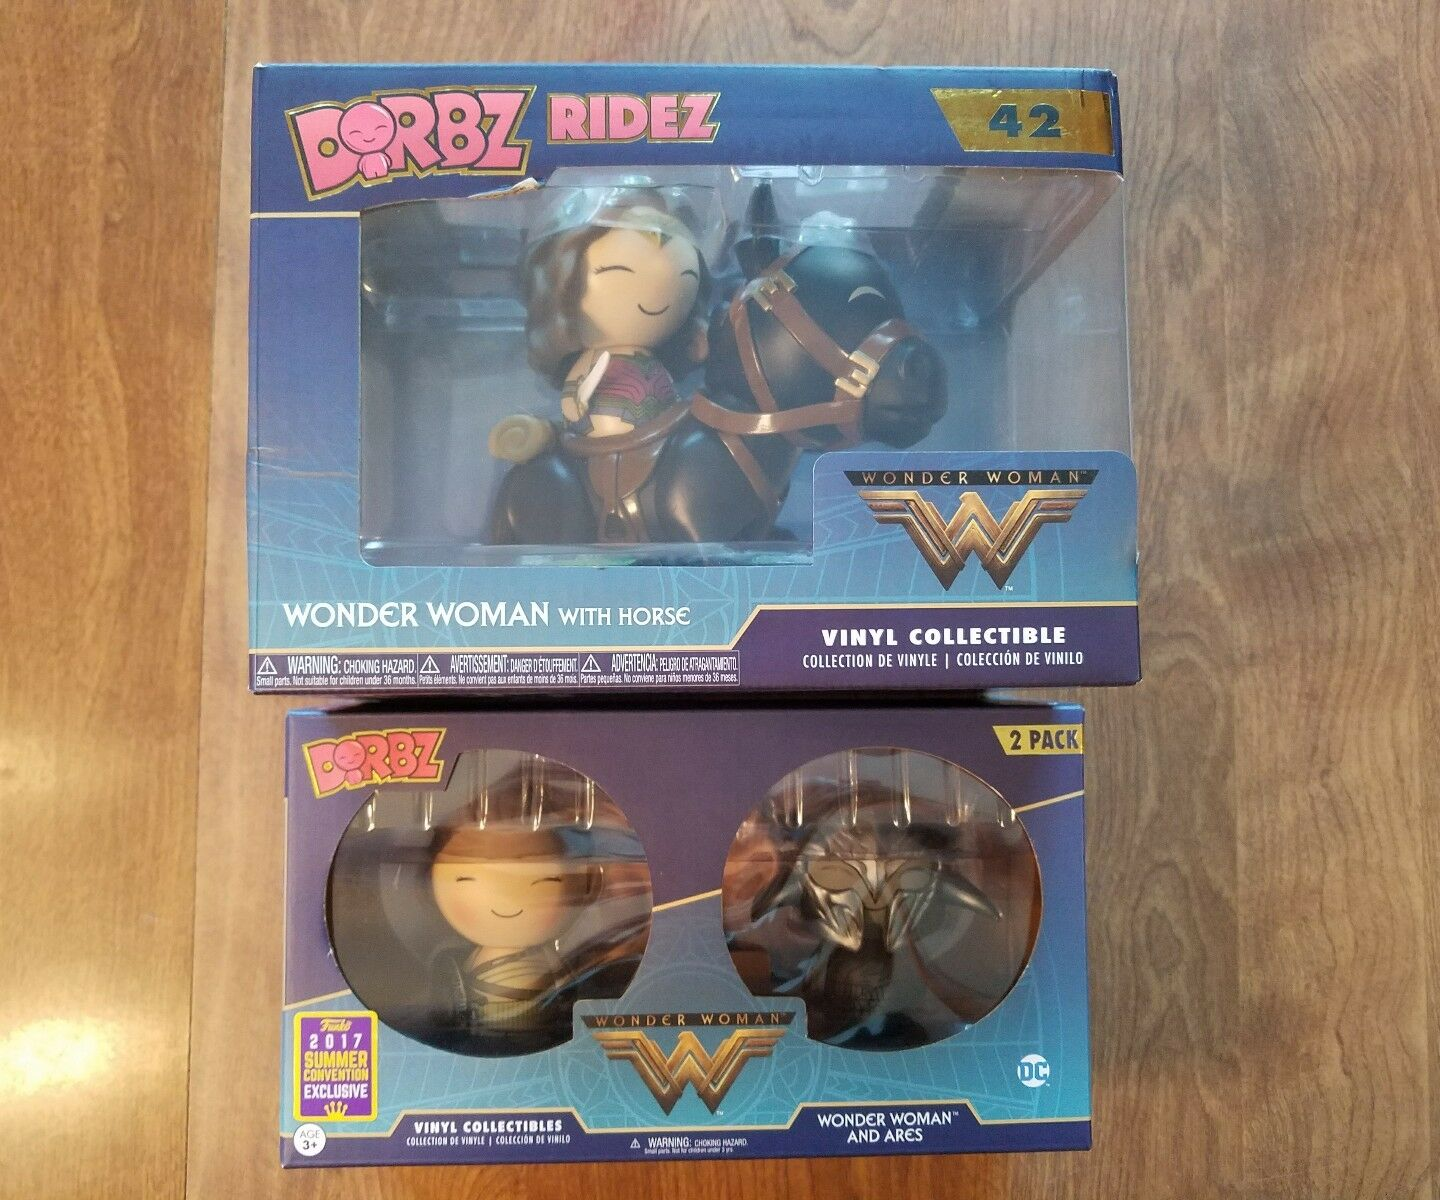 Funko Dorbz Wonder Woman Ride with Horse and Wonder Woman with Ares Figures